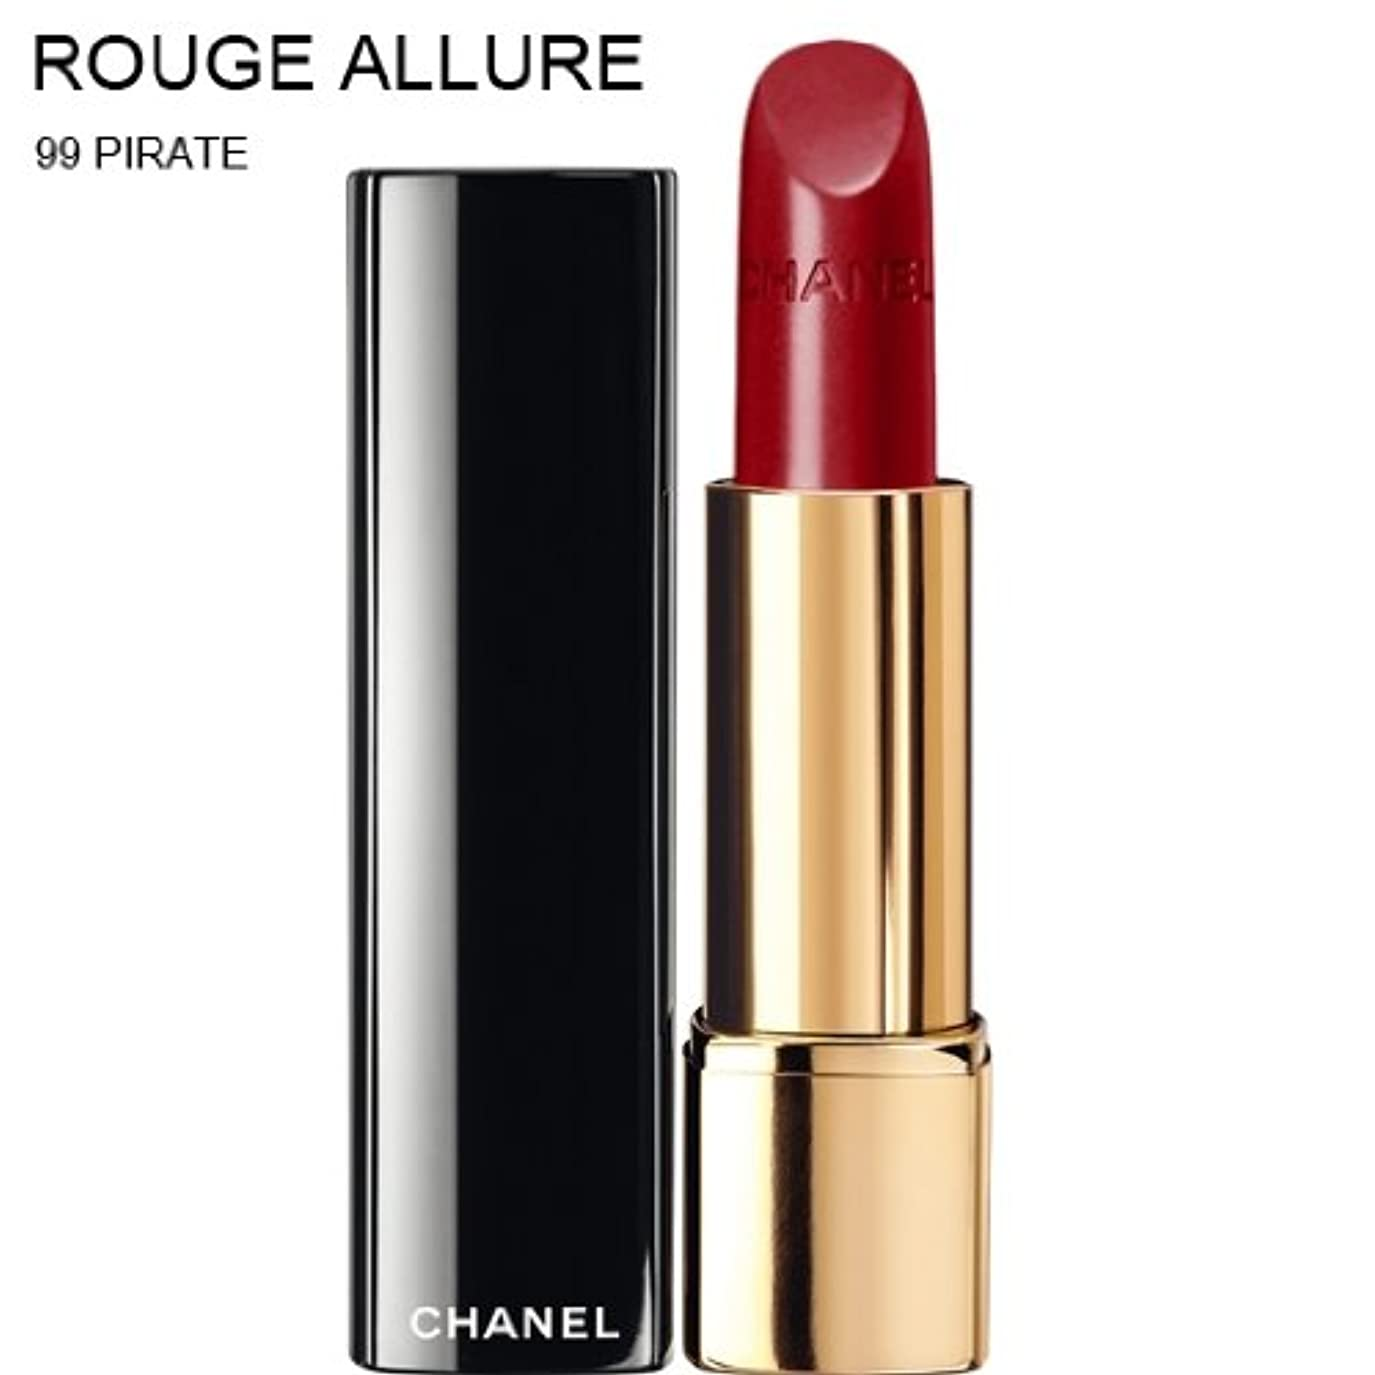 ギャラントリー形容詞花輪CHANEL ROUGE ALLURE INTENSE LONG-WEAR LIP COLOUR [並行輸入品] (99 PIRATE)